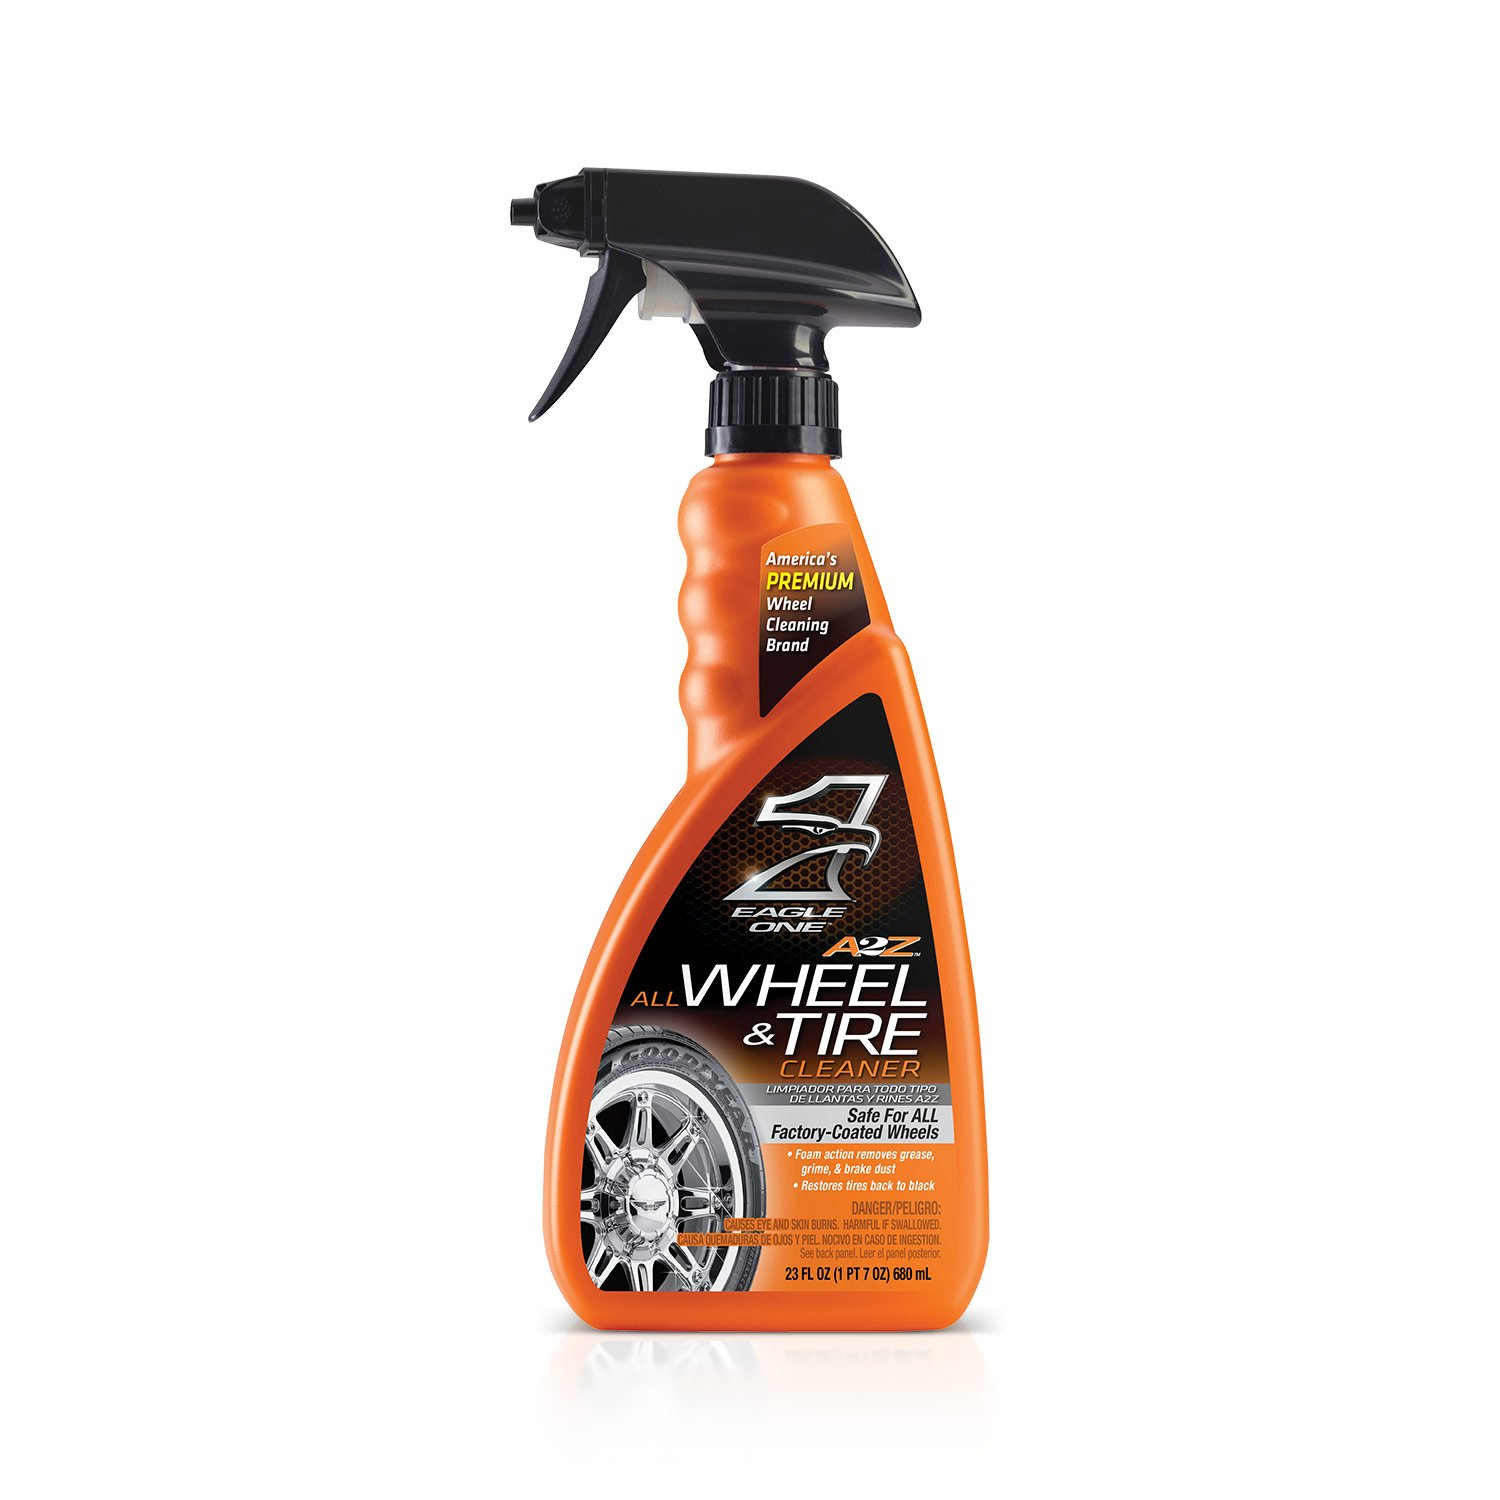 Eagle One E301454600 All Wheel and Tire Cleaner